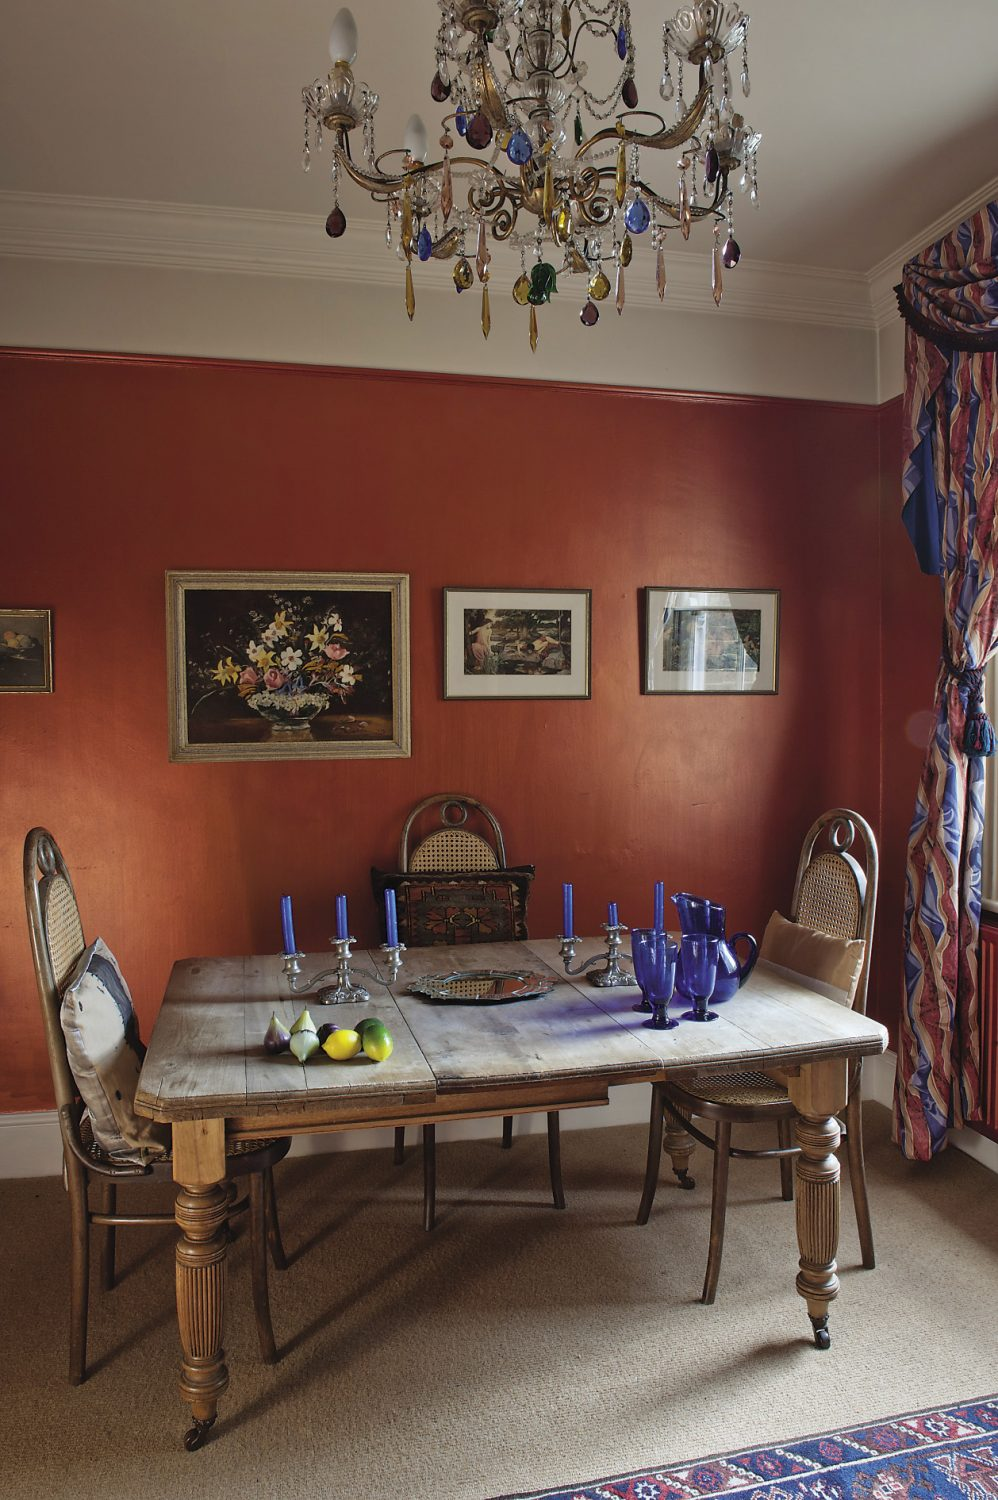 The dining room walls are painted a warm terracotta with a Jocasta Innes copper wash over the top, giving them a kind of iridescent sheen. A Murano glass chandelier is hung with coloured glass fruit-like droplets